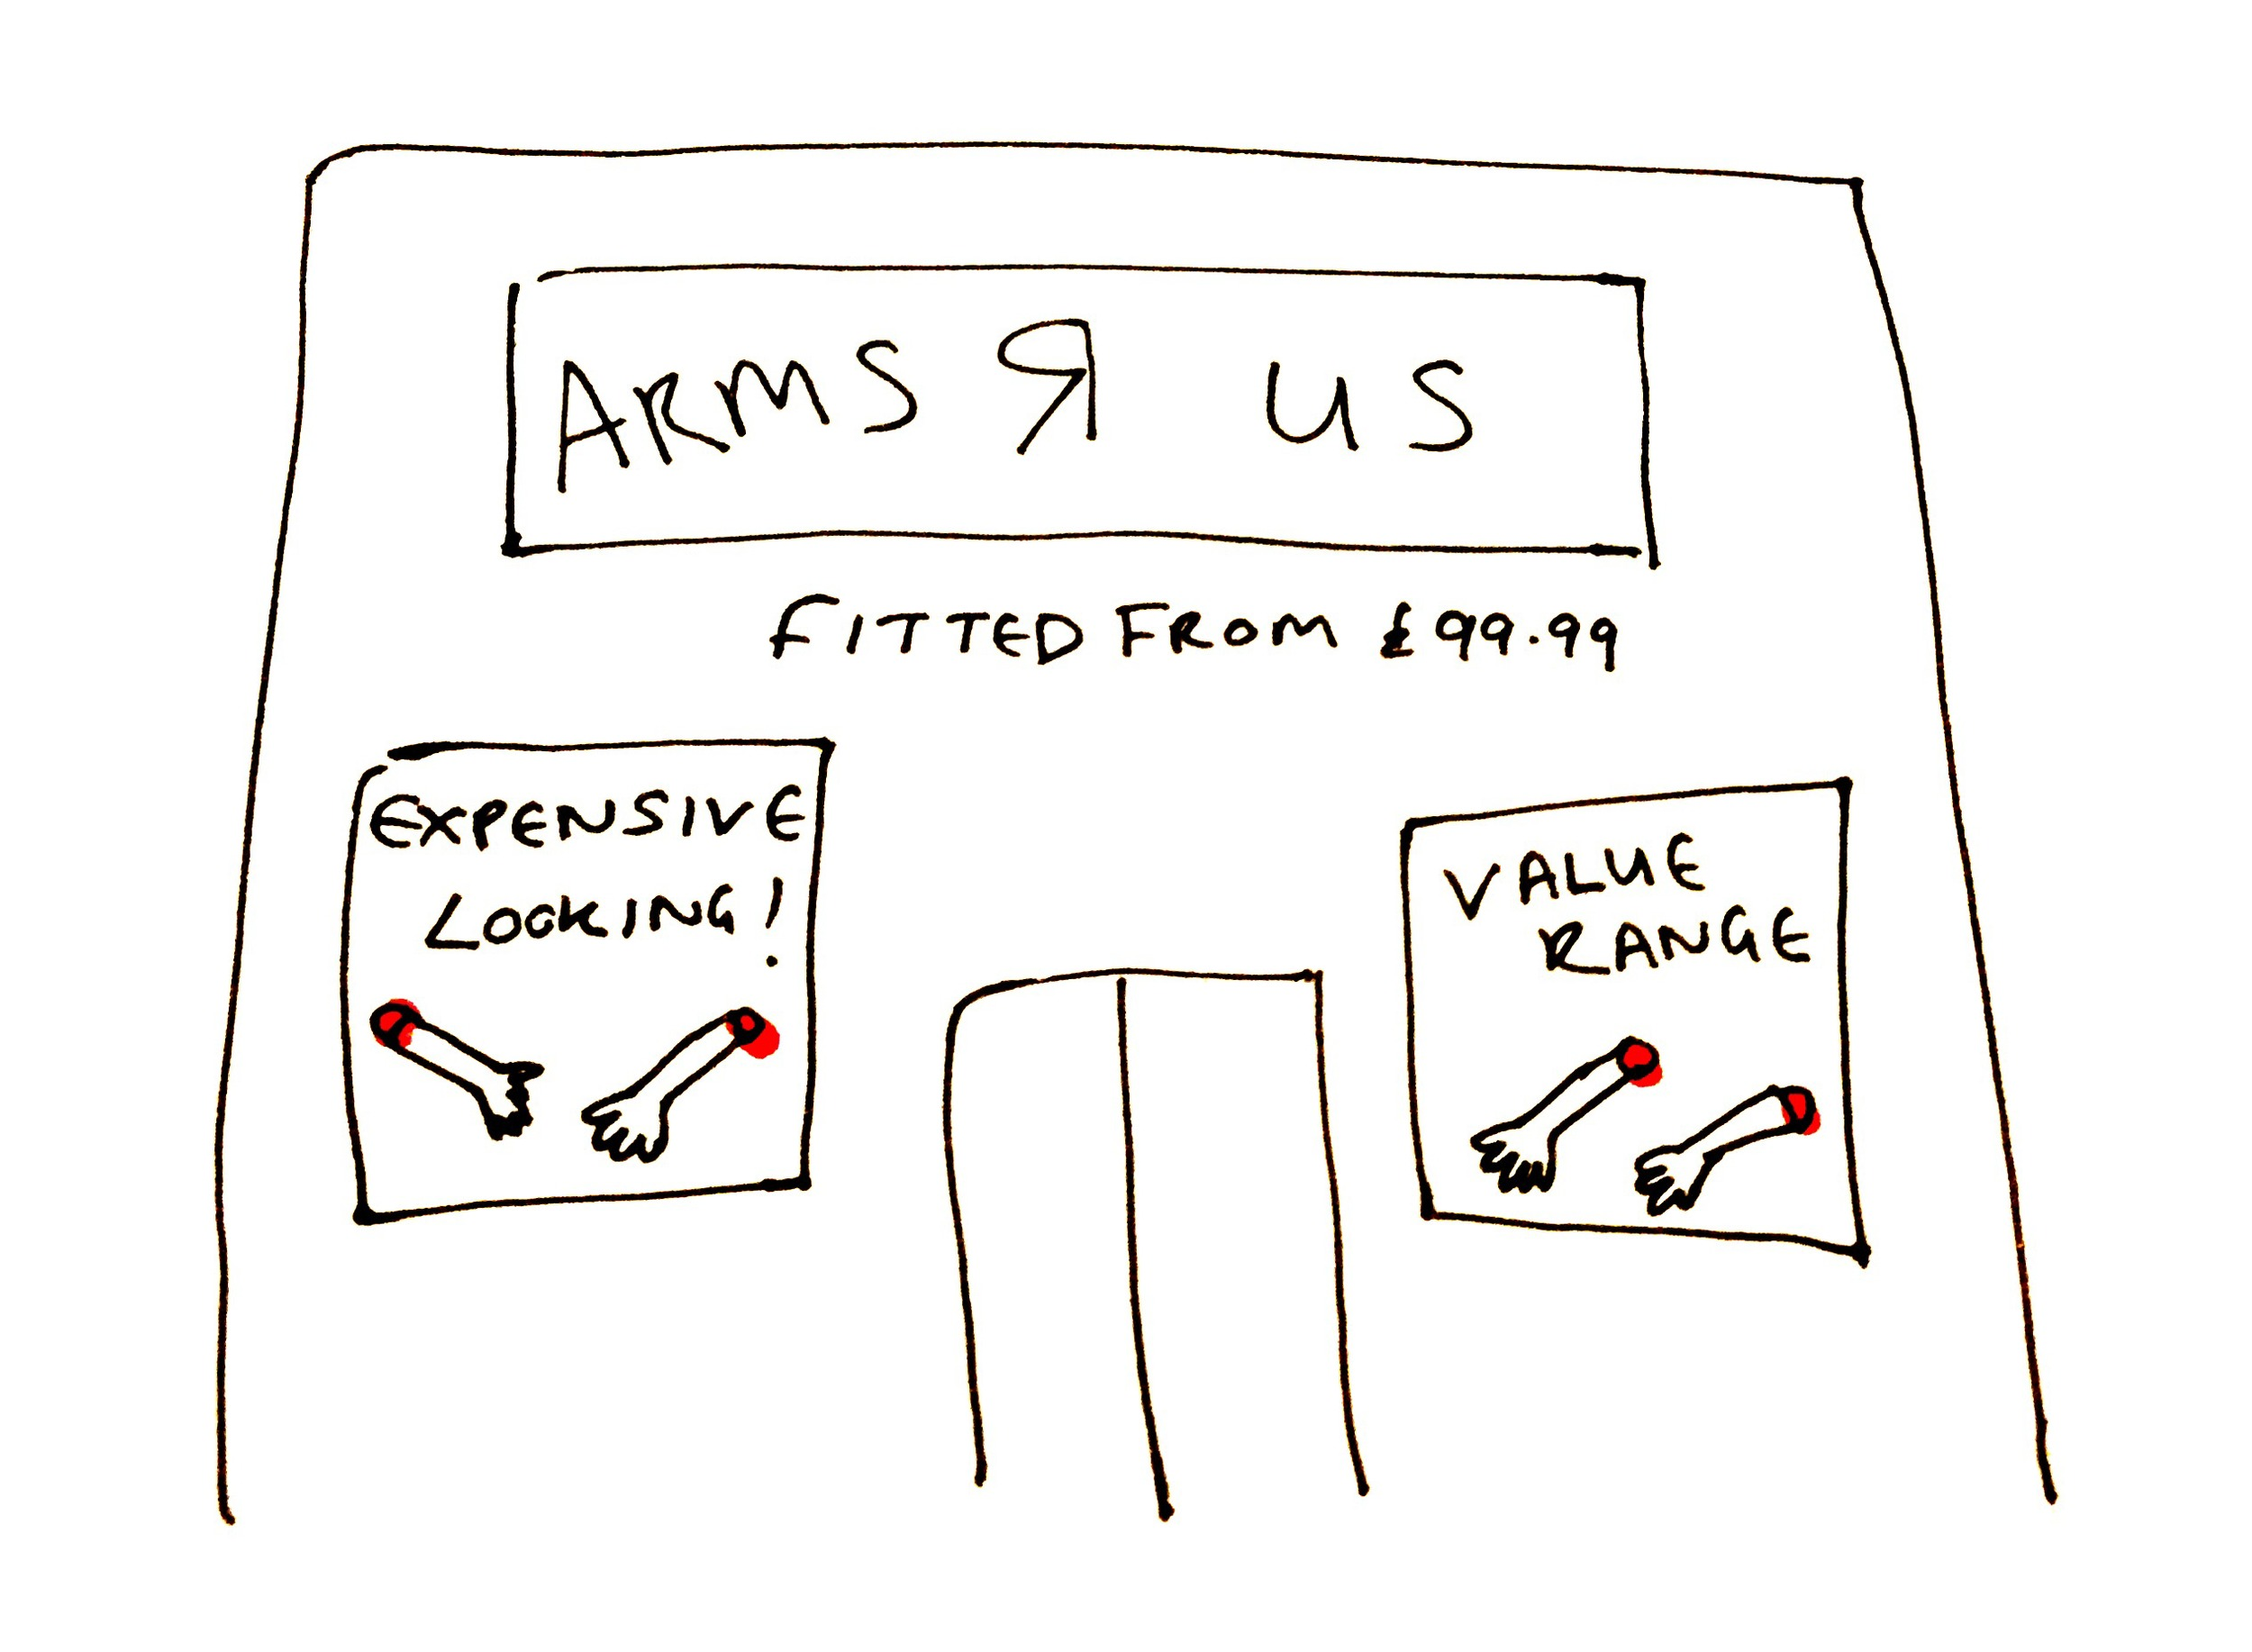 Expensive Looking Arms